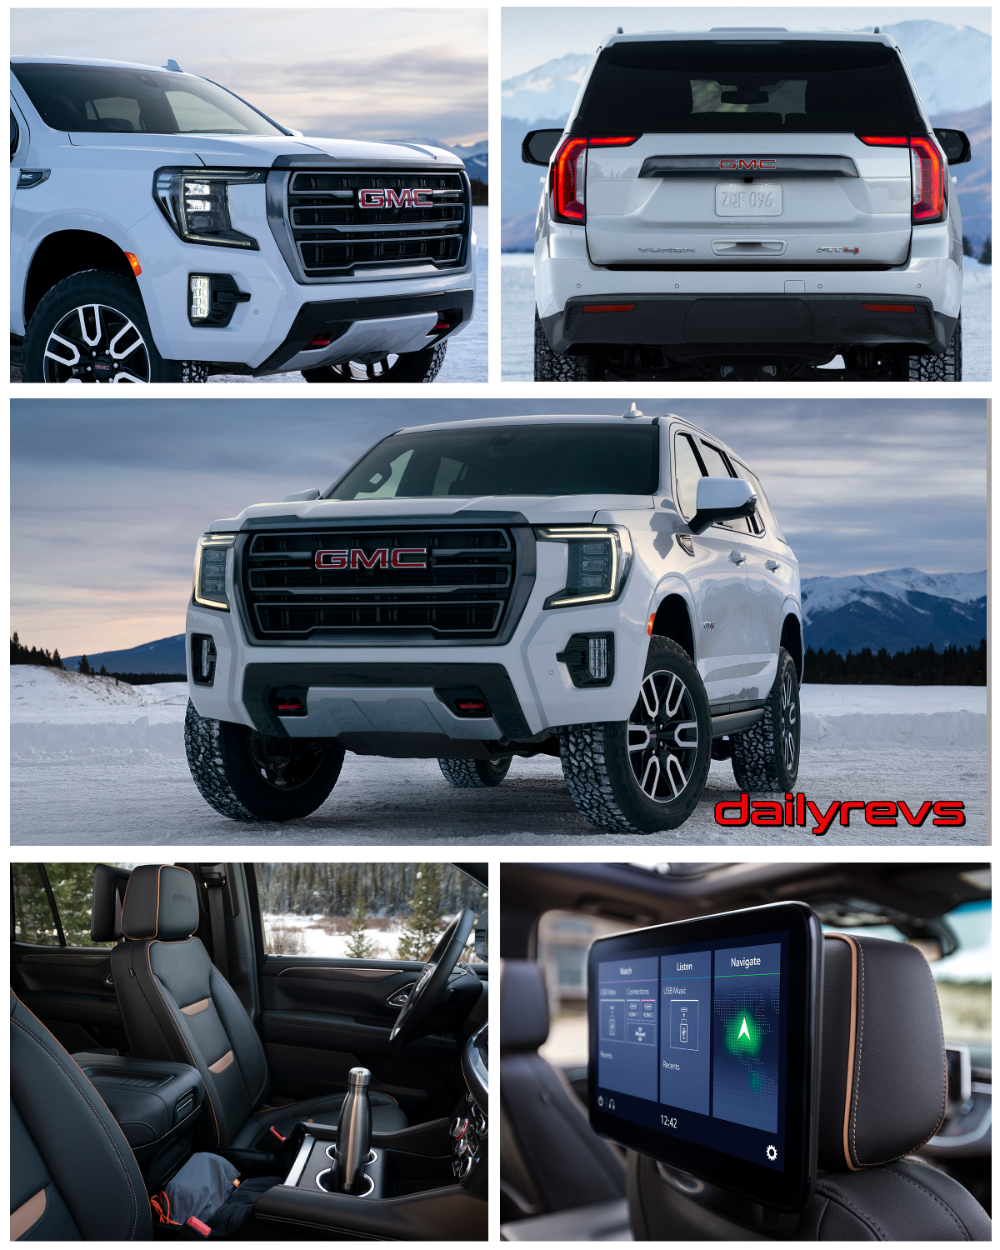 2021 Gmc Yukon At4 Hd Pictures Videos Specs Information In 2020 Gmc Vehicles Gmc Yukon Gmc